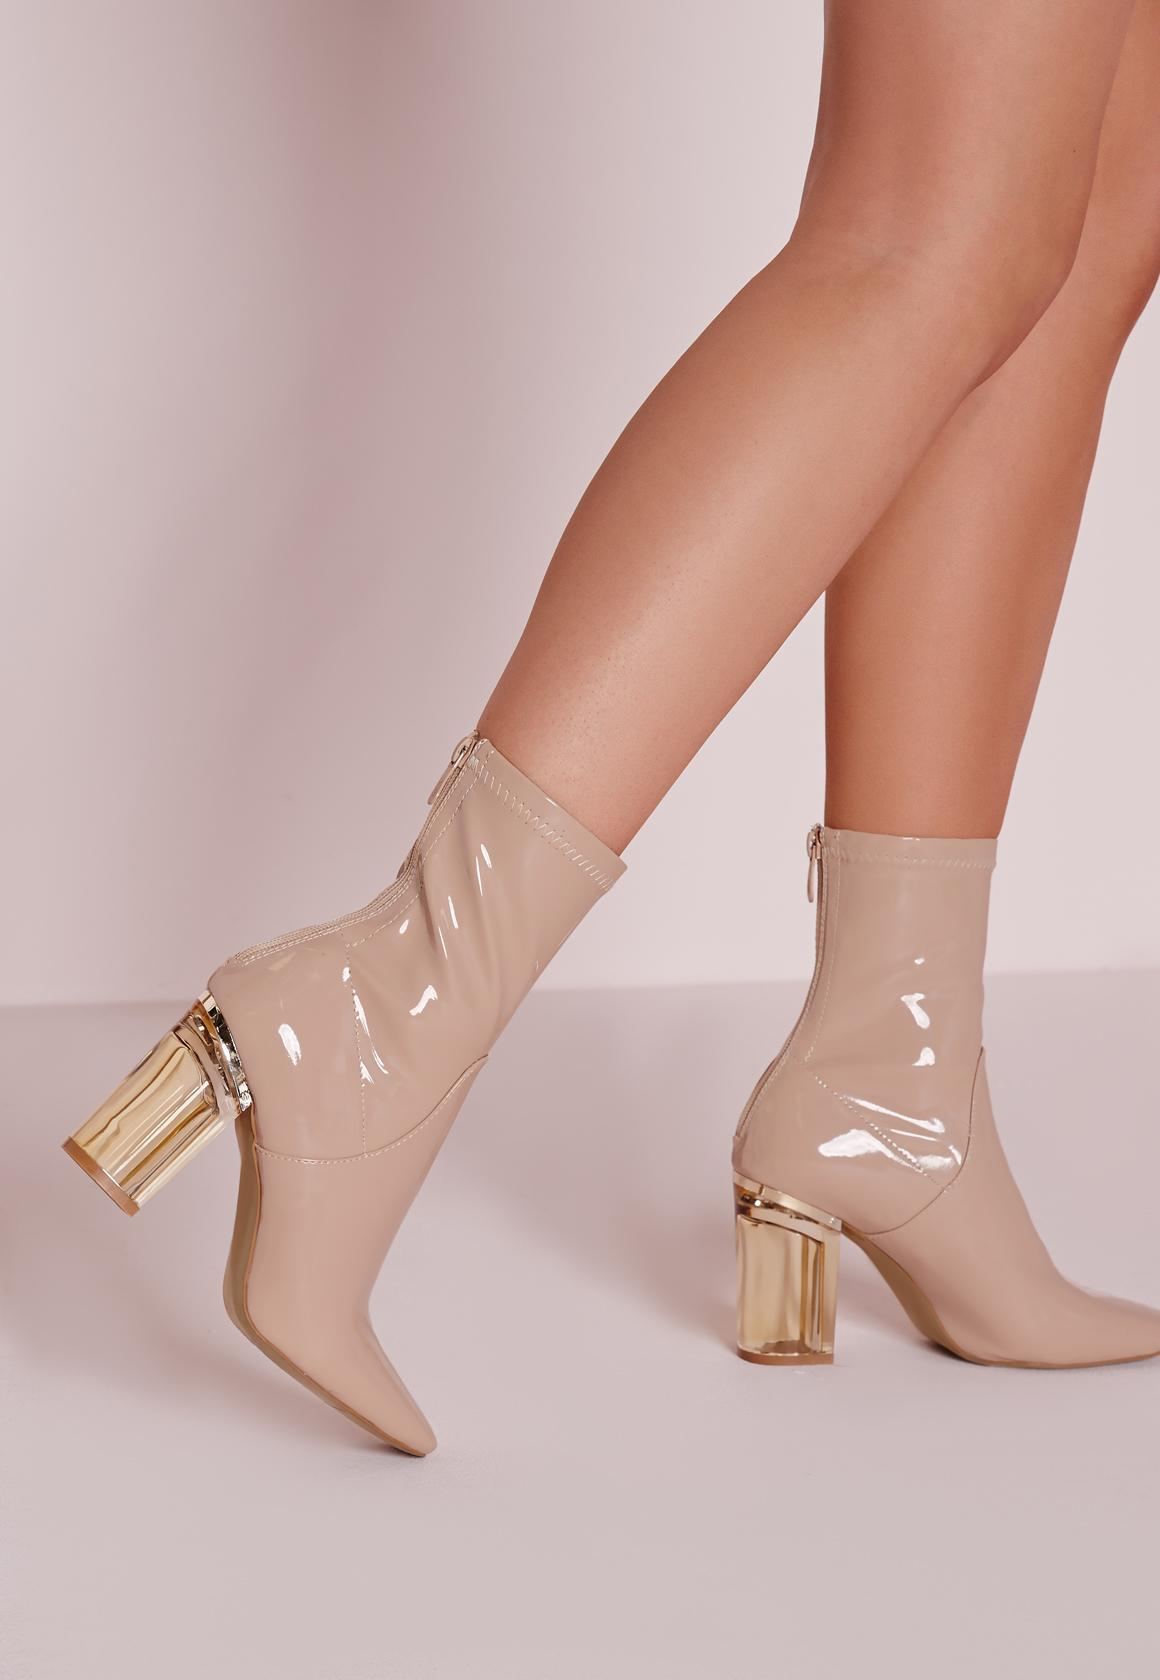 Patent Ankle Boots Perspex Heel Nude - Missguided